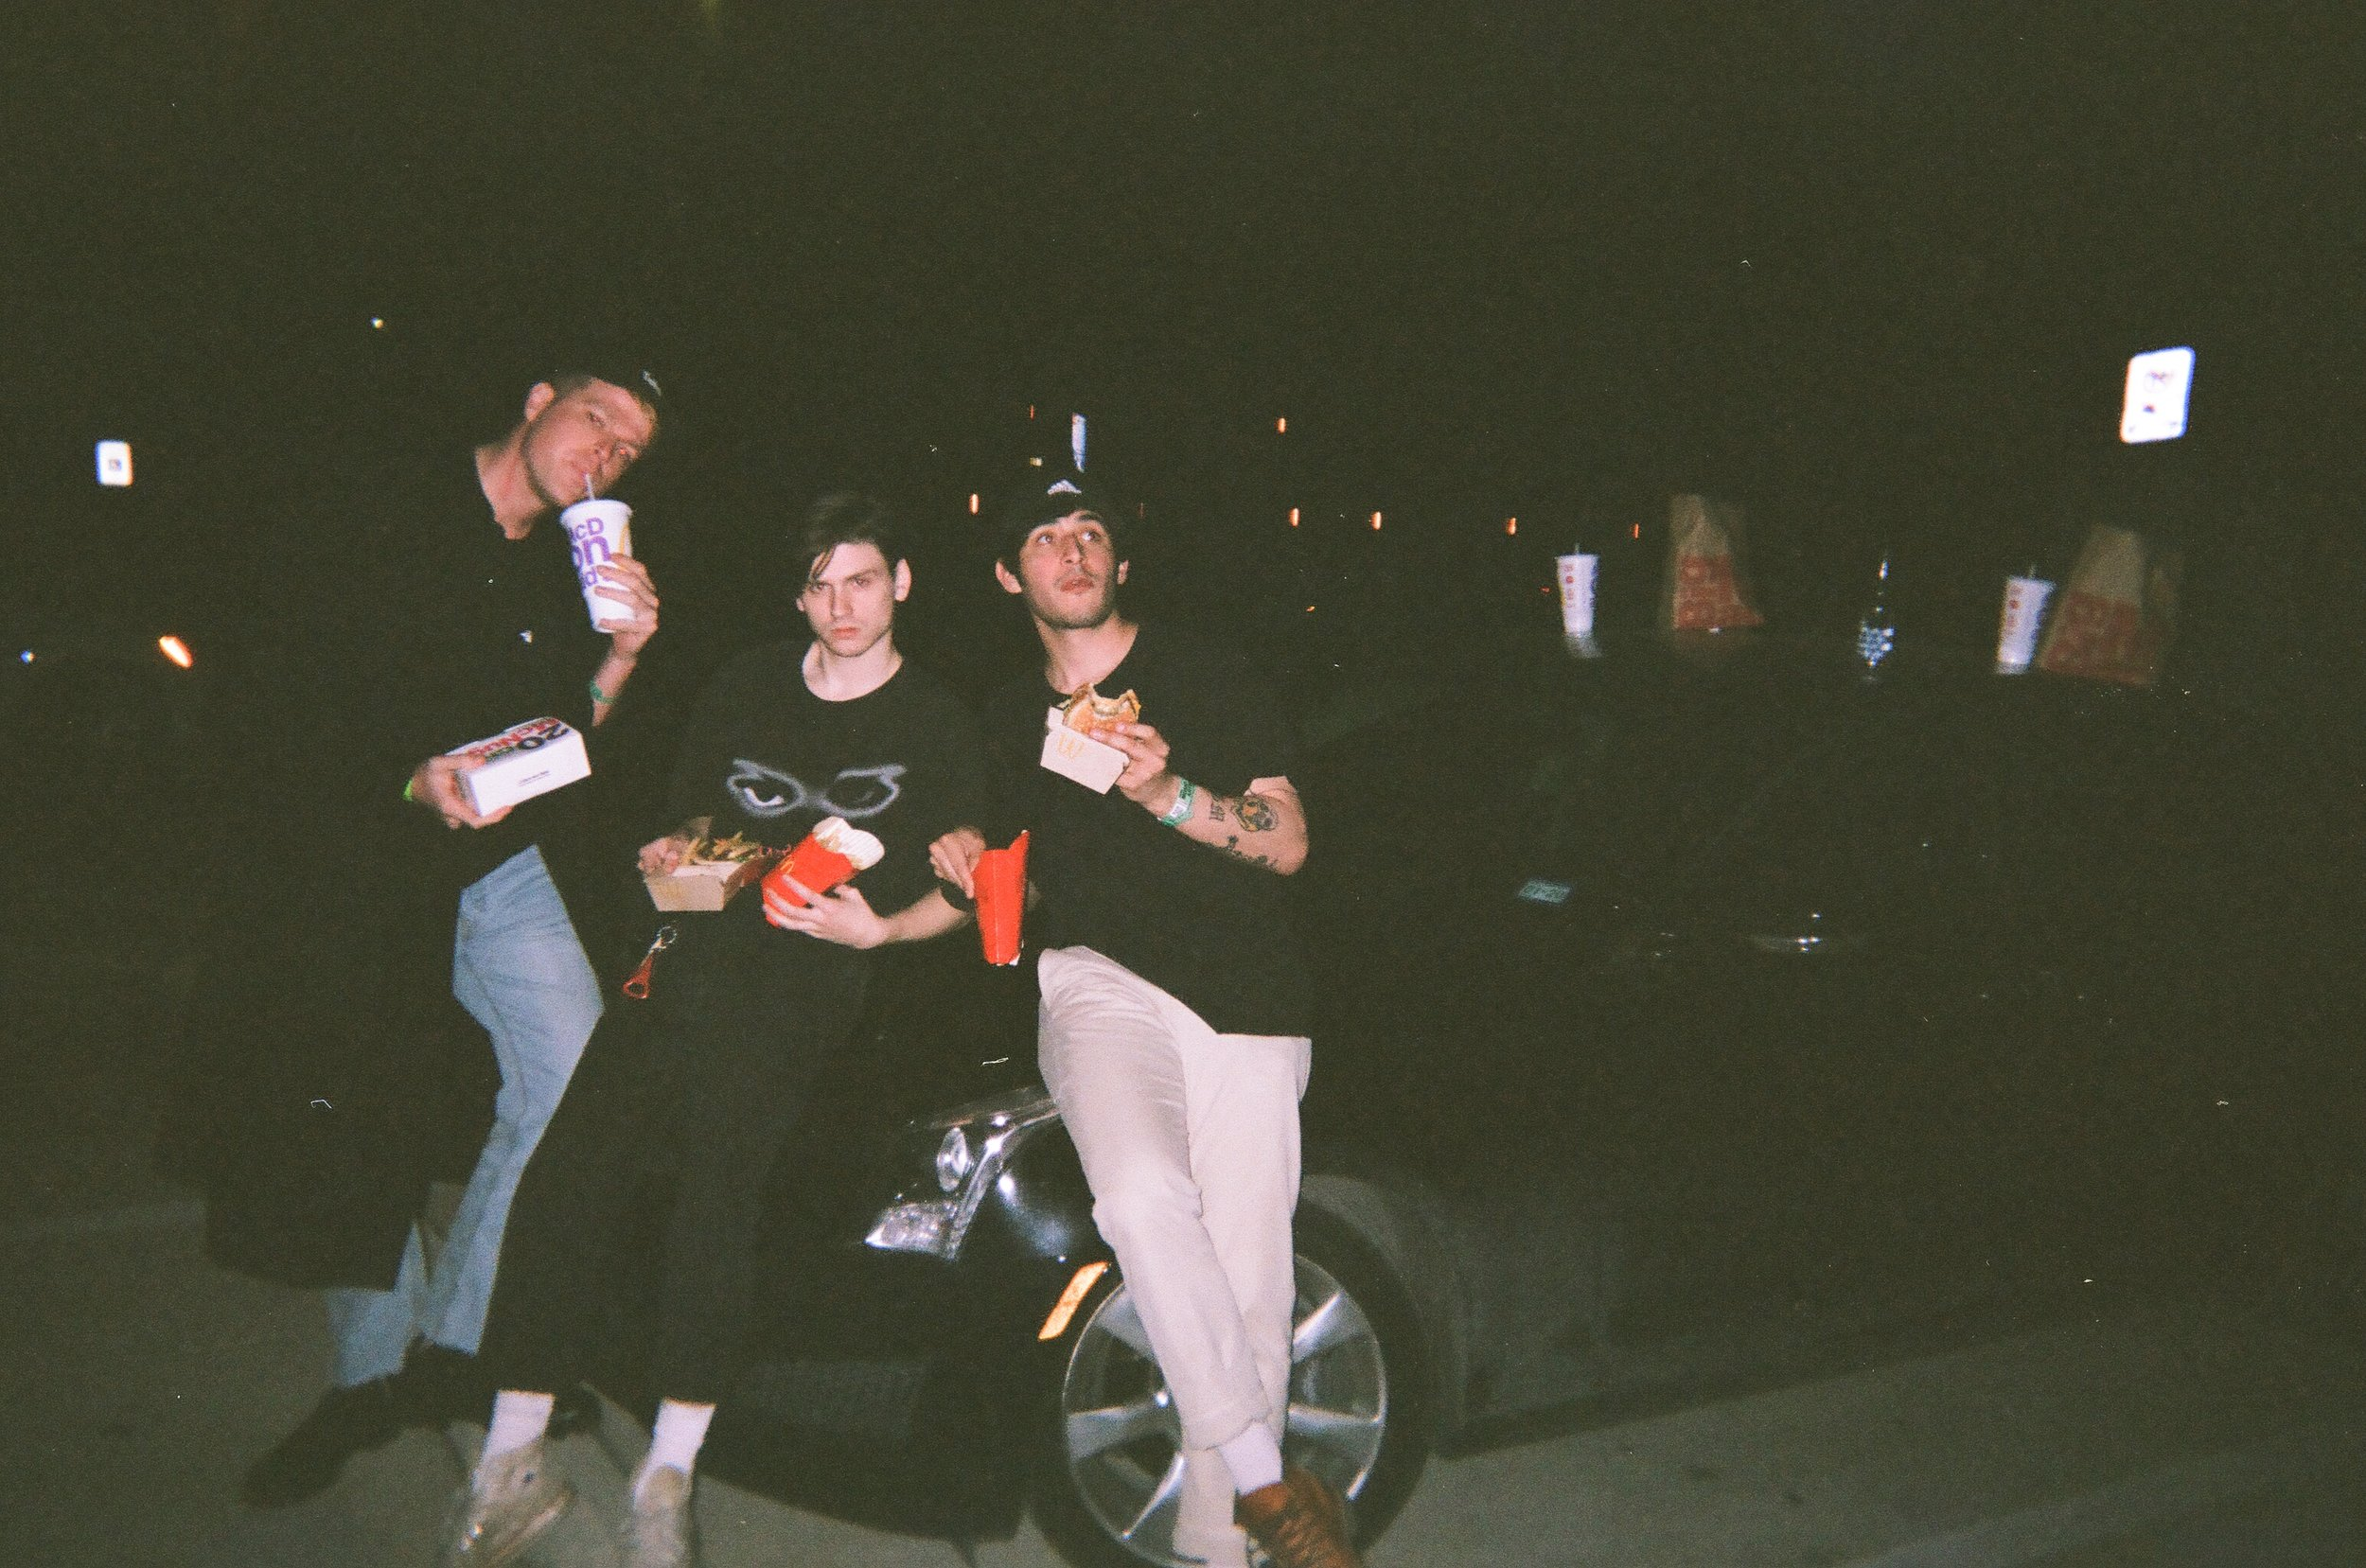 Here's a shot of us eating McDonald's at 3AM on the hood of the company car.